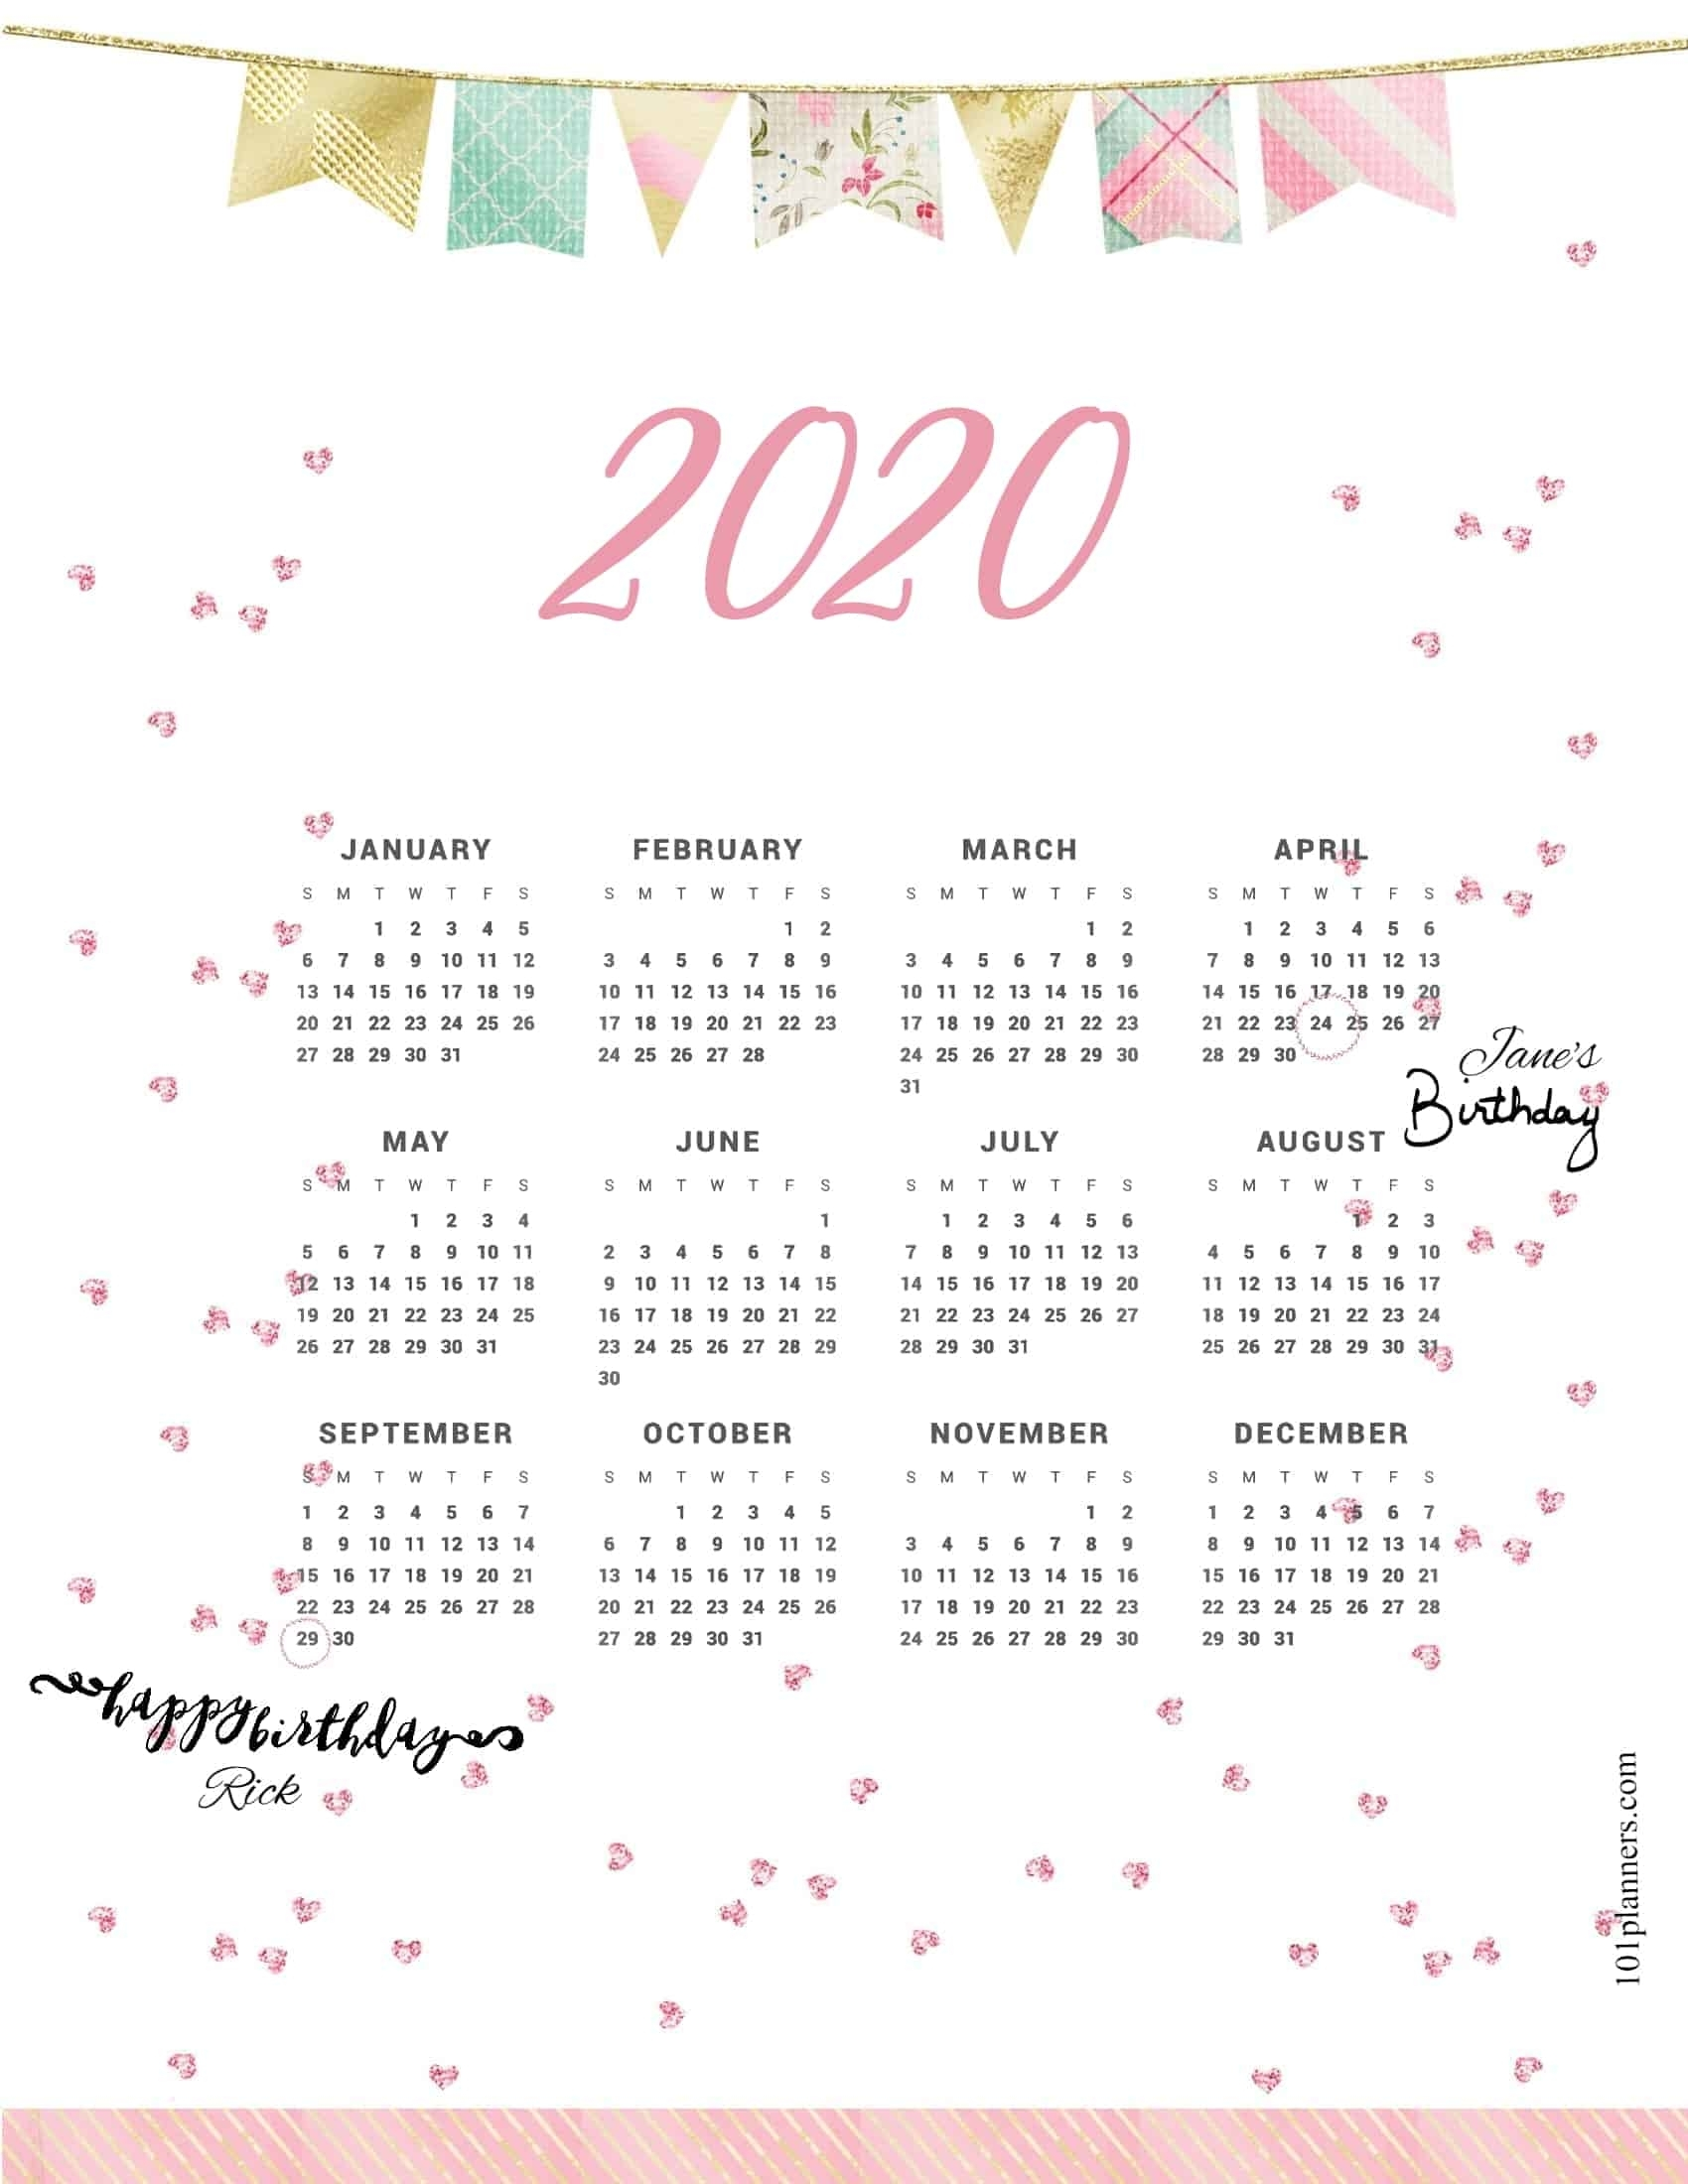 Free Printable 2020 Yearly Calendar At A Glance | 101 intended for Free Word 2020 Calendar Year At A Glance